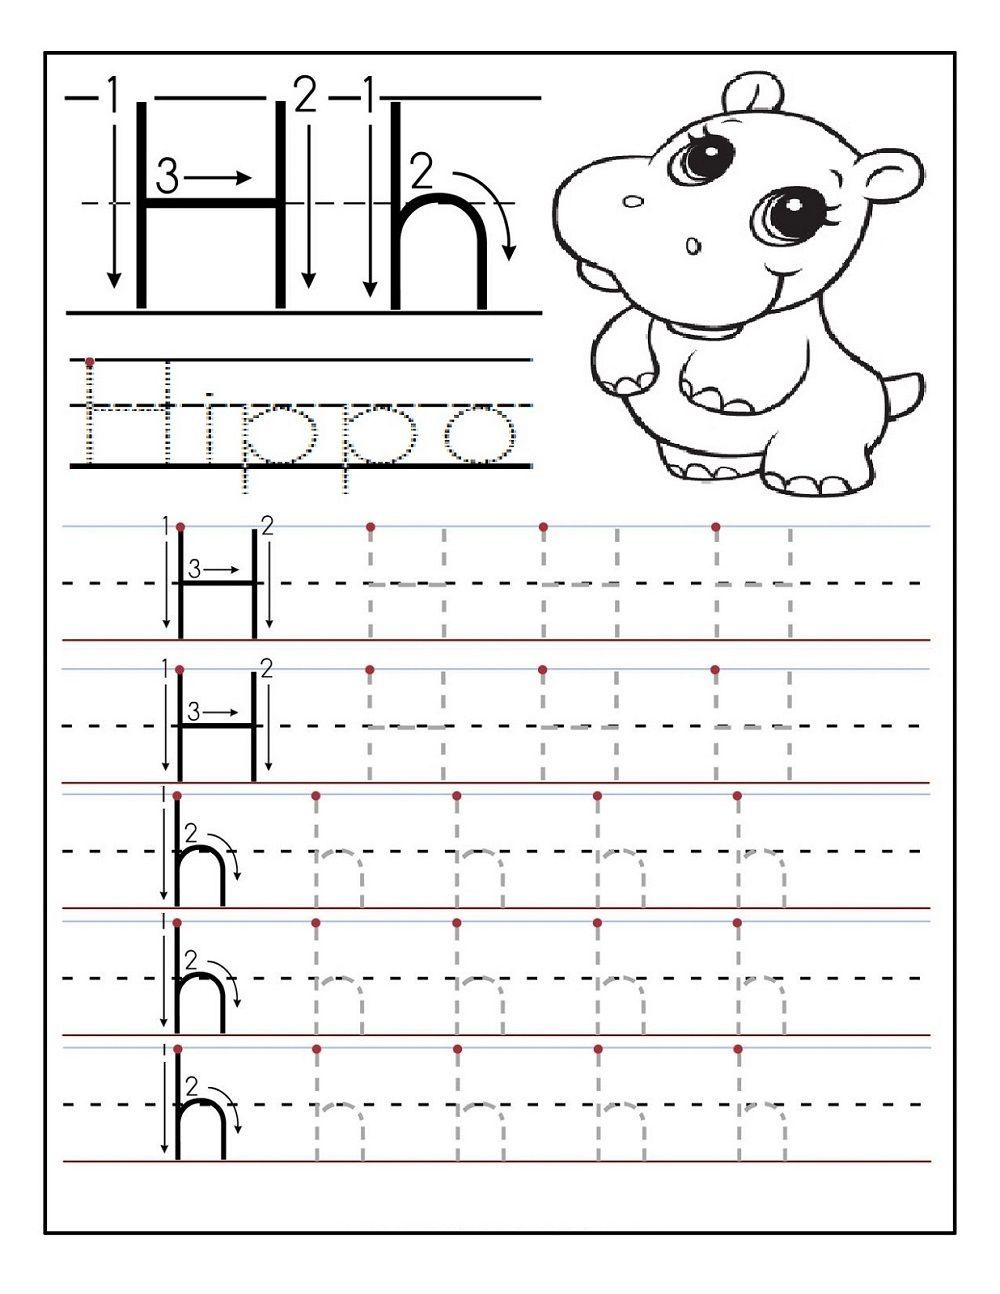 small resolution of Tracing Worksheets 3 Year Old Fun   Tracing worksheets preschool